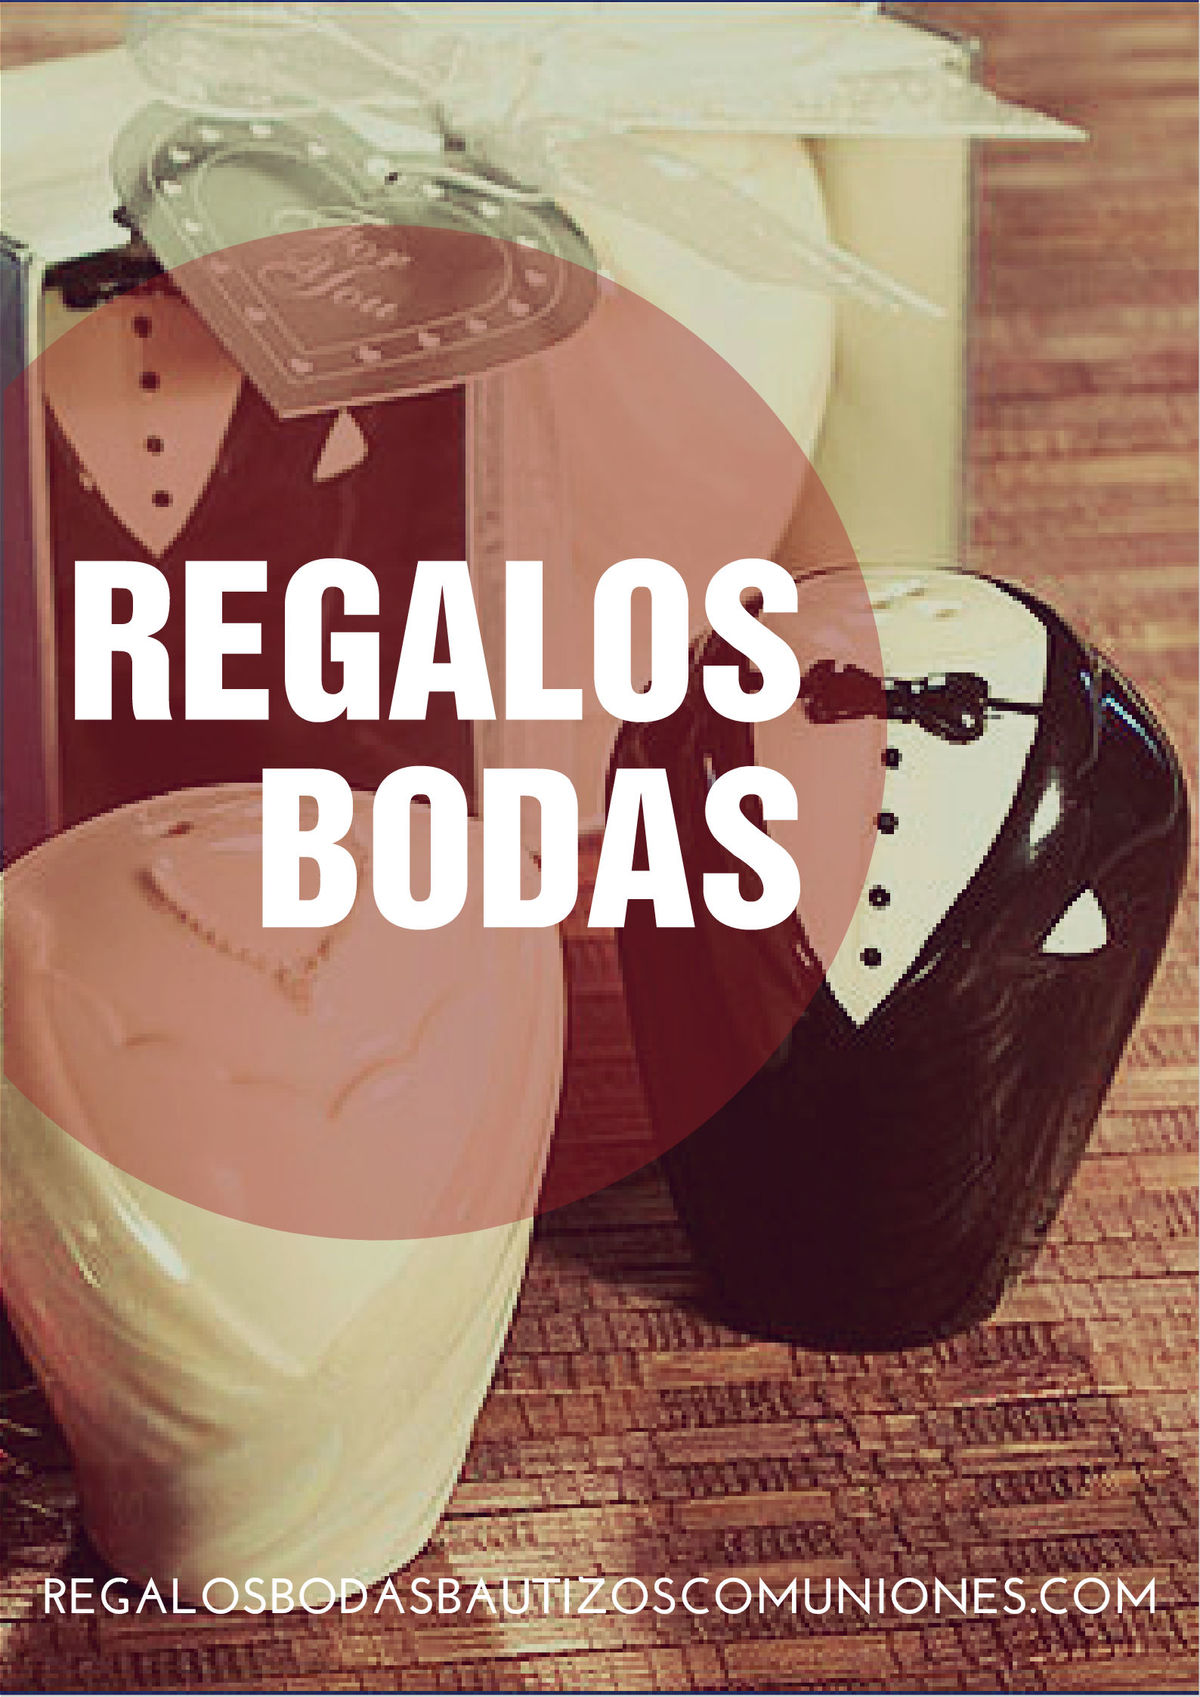 Headline for Regalos Bodas, Bautizos y Comuniones en Instagram